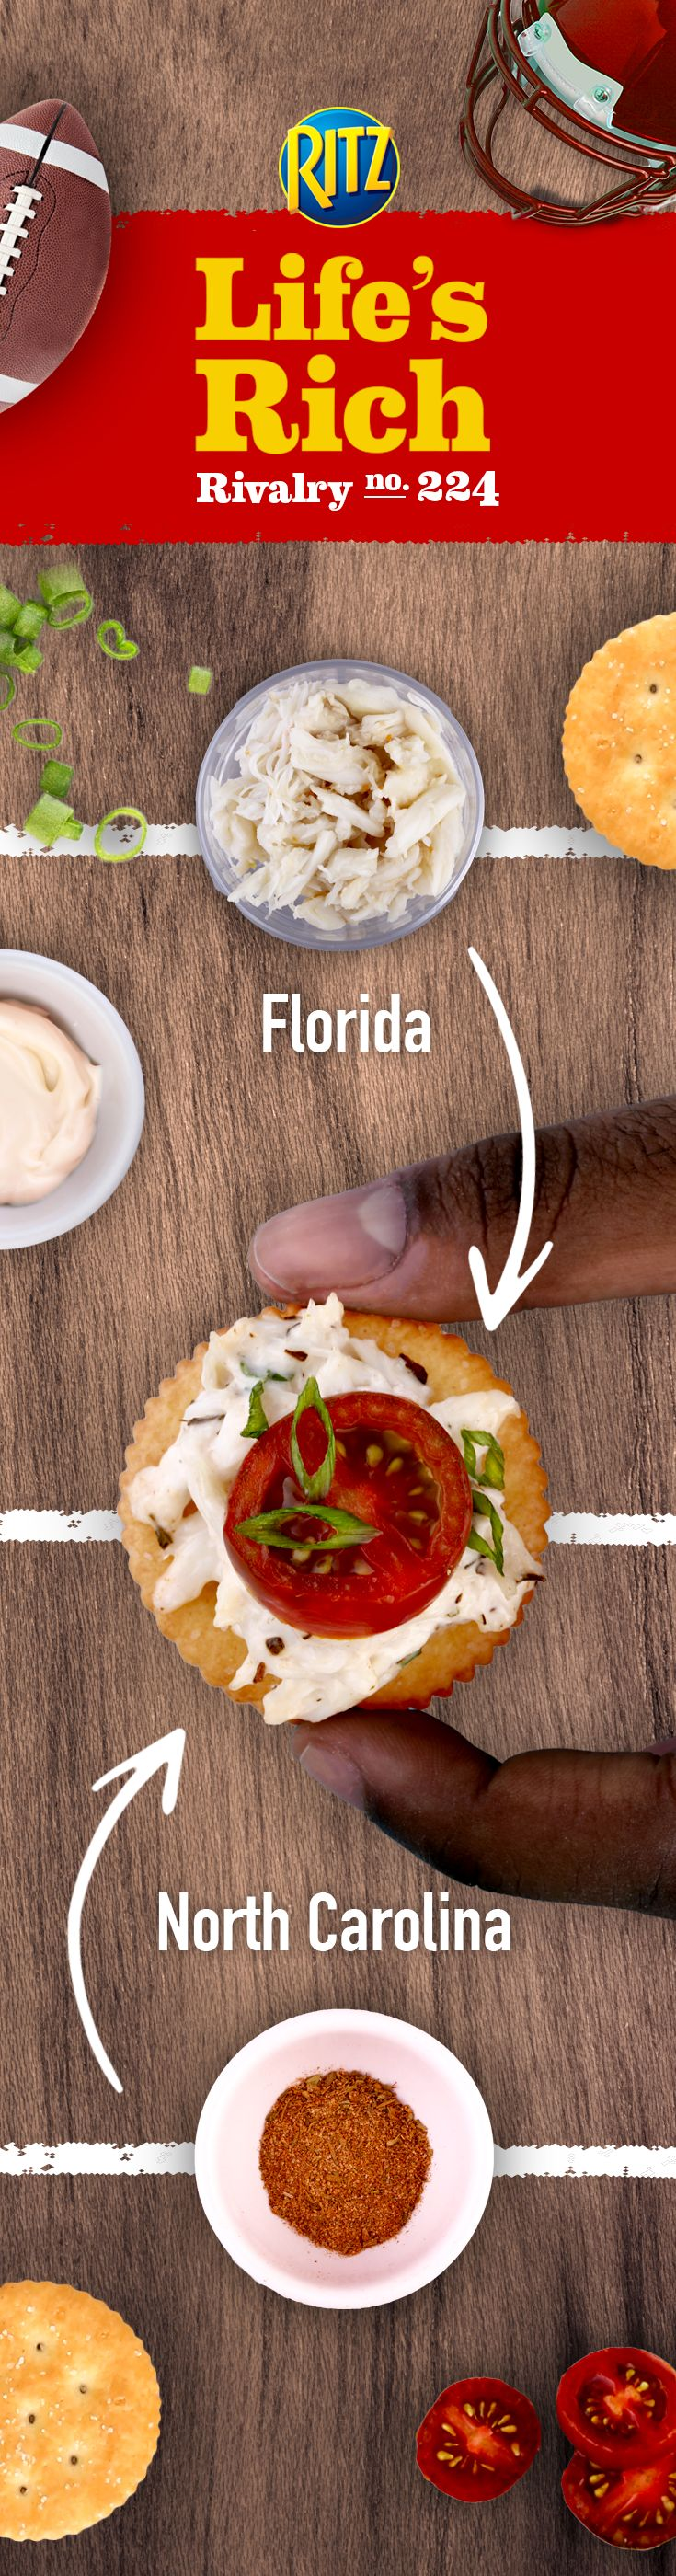 When game day hits, bring a football rivalry-inspired recipe to the table with Florida-style crab meat & North Carolina-inspired Cajun seasoning. Make RITZ Cajun Crab Salad Toppers by following these simple recipe steps: 1. Combine crab meat w/ mayonnaise & Cajun seasoning 2. Top RITZ Crackers w/ crab meat 3. Add slice of tomato & a bit of green onion to each cracker. This simple appetizer will bring people together at your next football party.